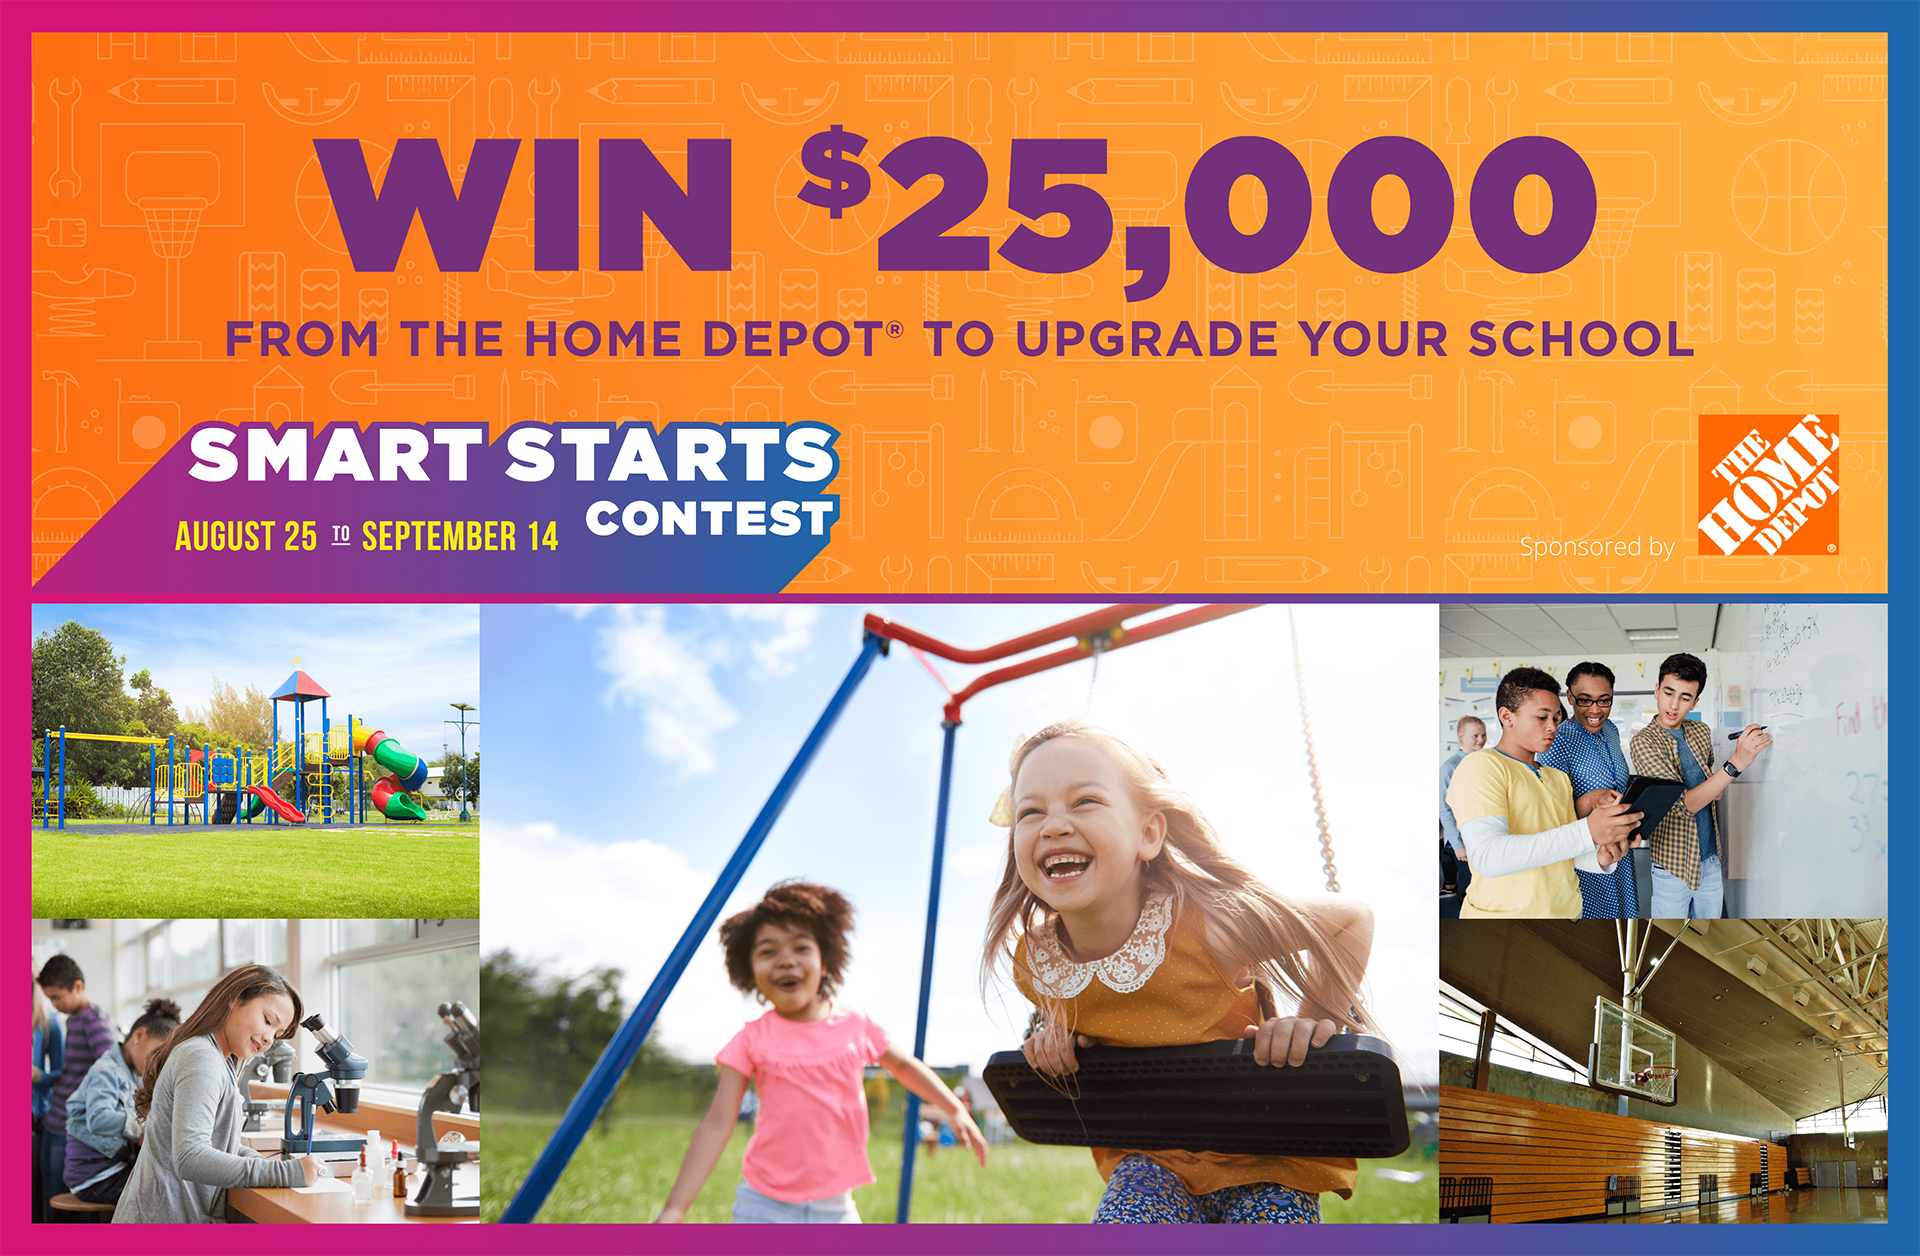 Win $25,000 from The Home Depot to Upgrade Your School